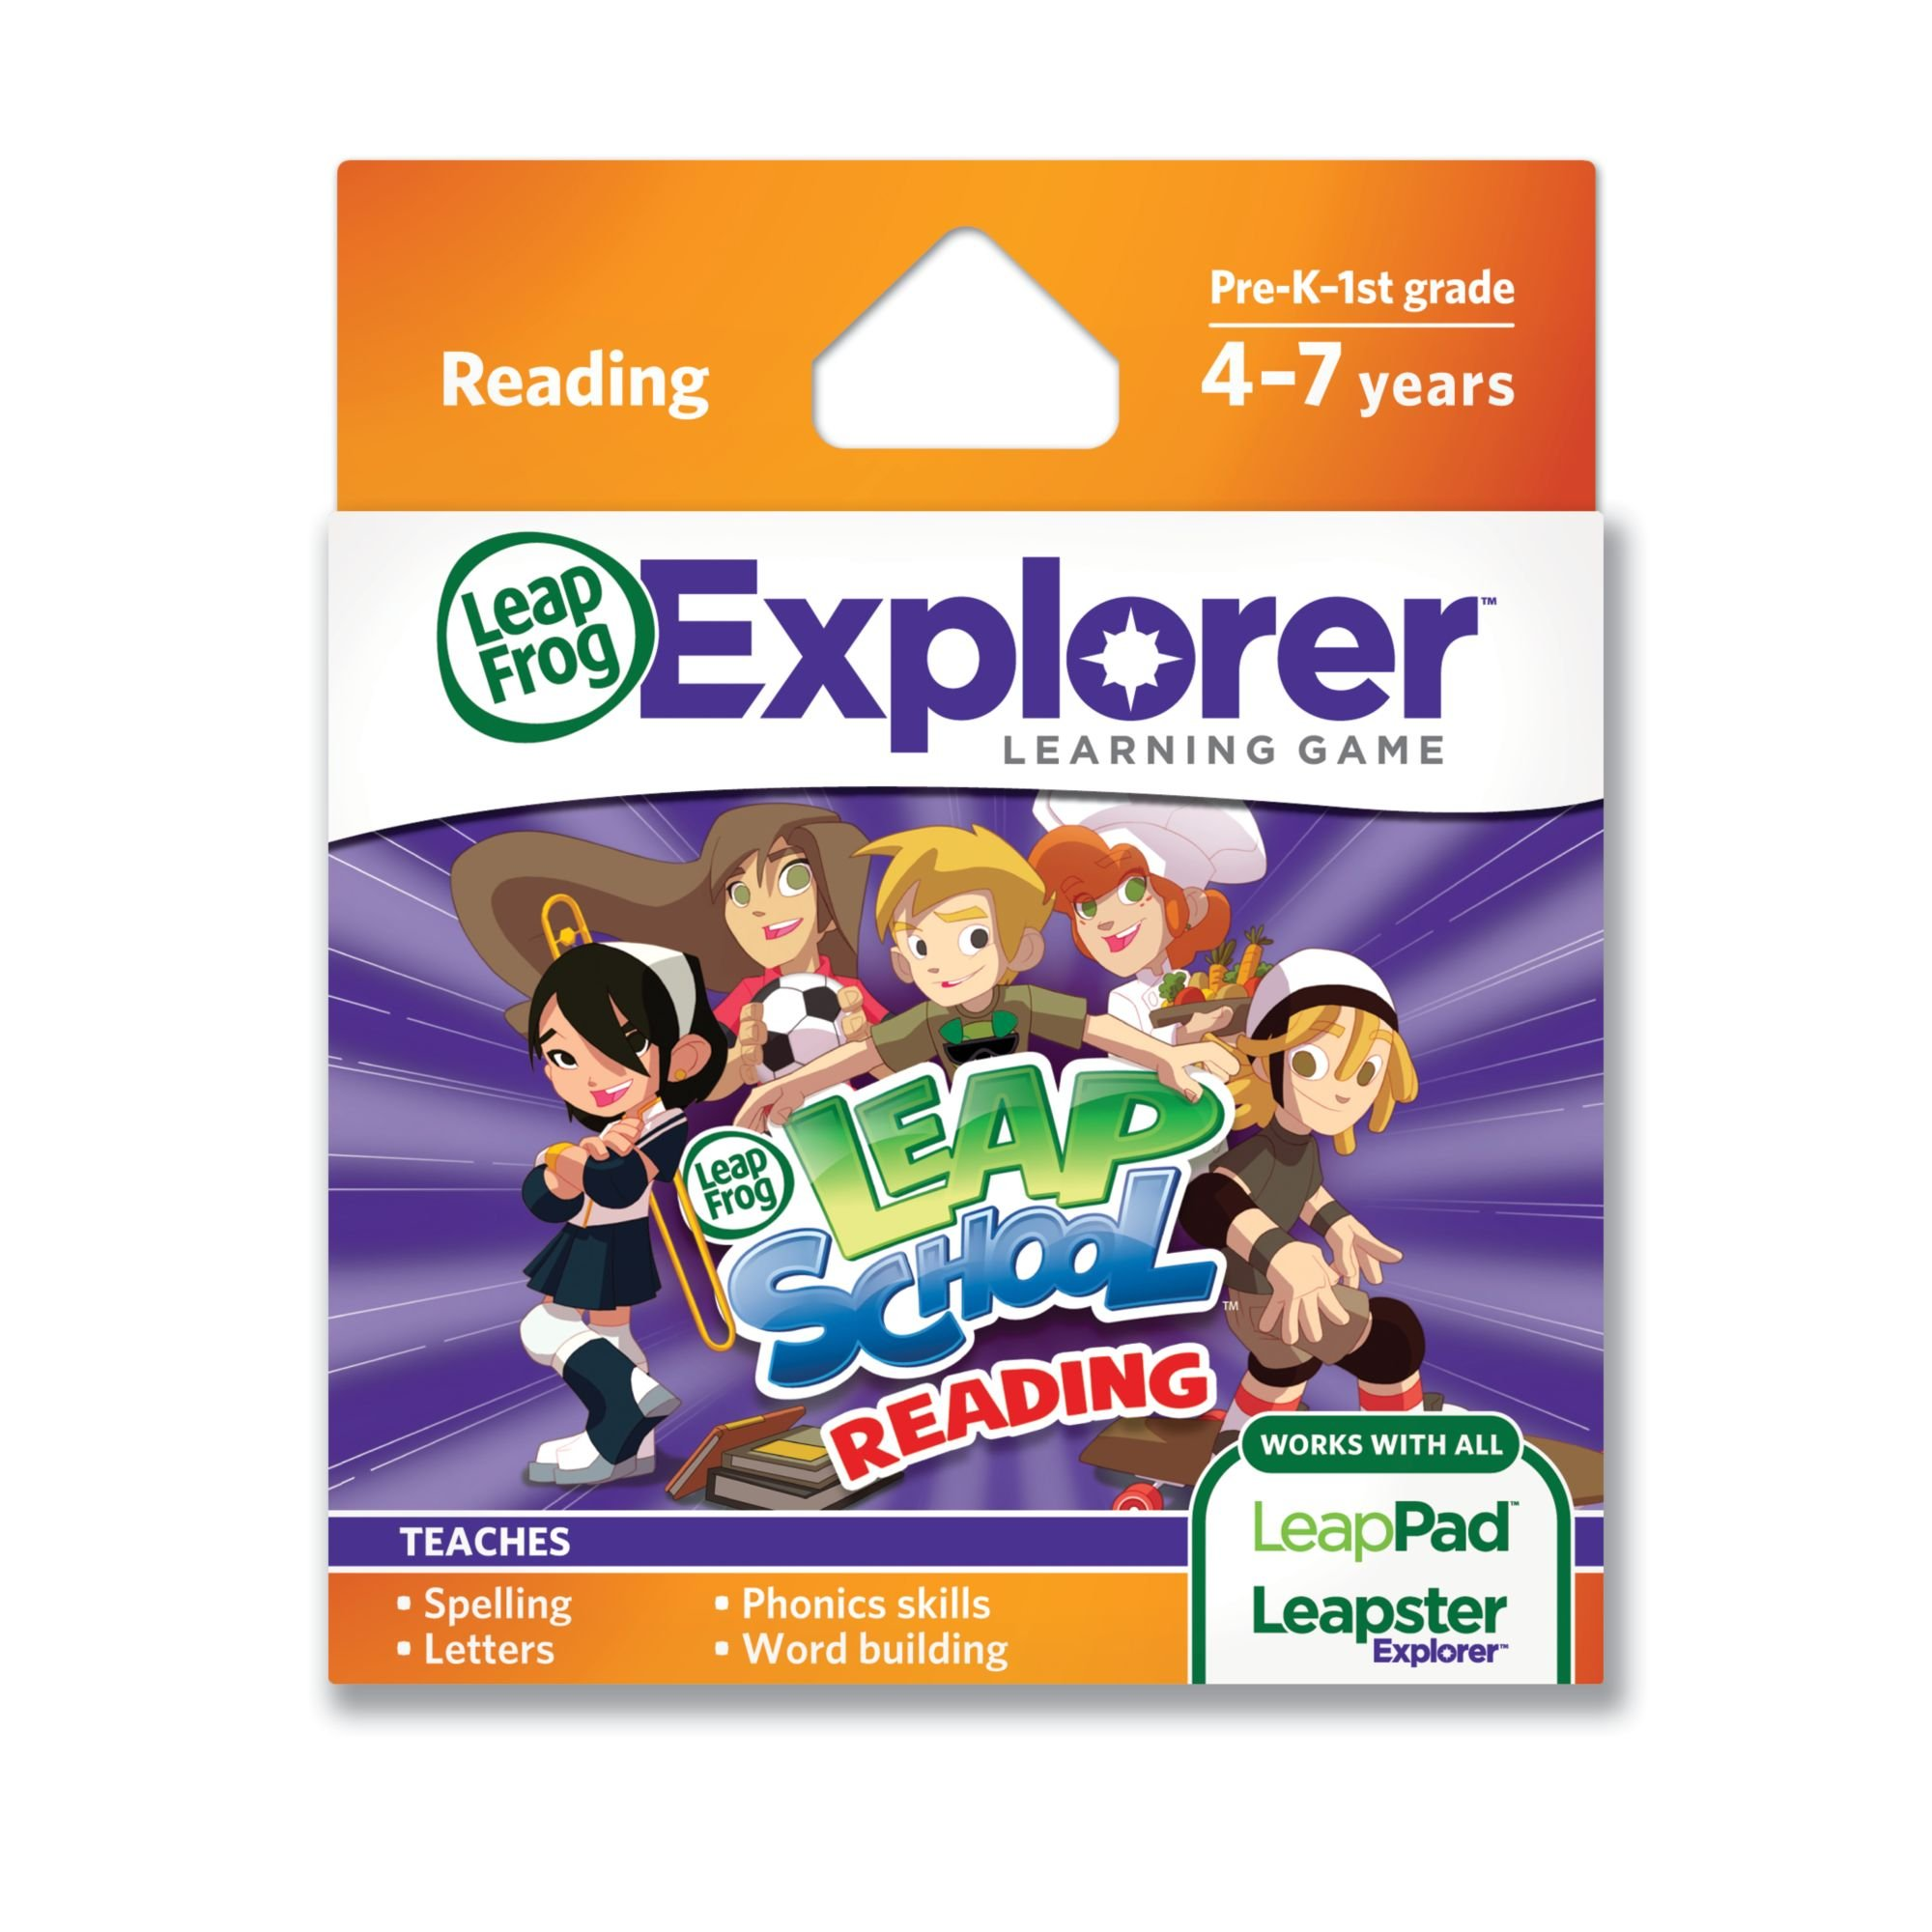 LeapFrog LeapSchool Reading Learning Game (works with LeapPad Tablets, LeapsterGS, and Leapster Explorer) by LeapFrog